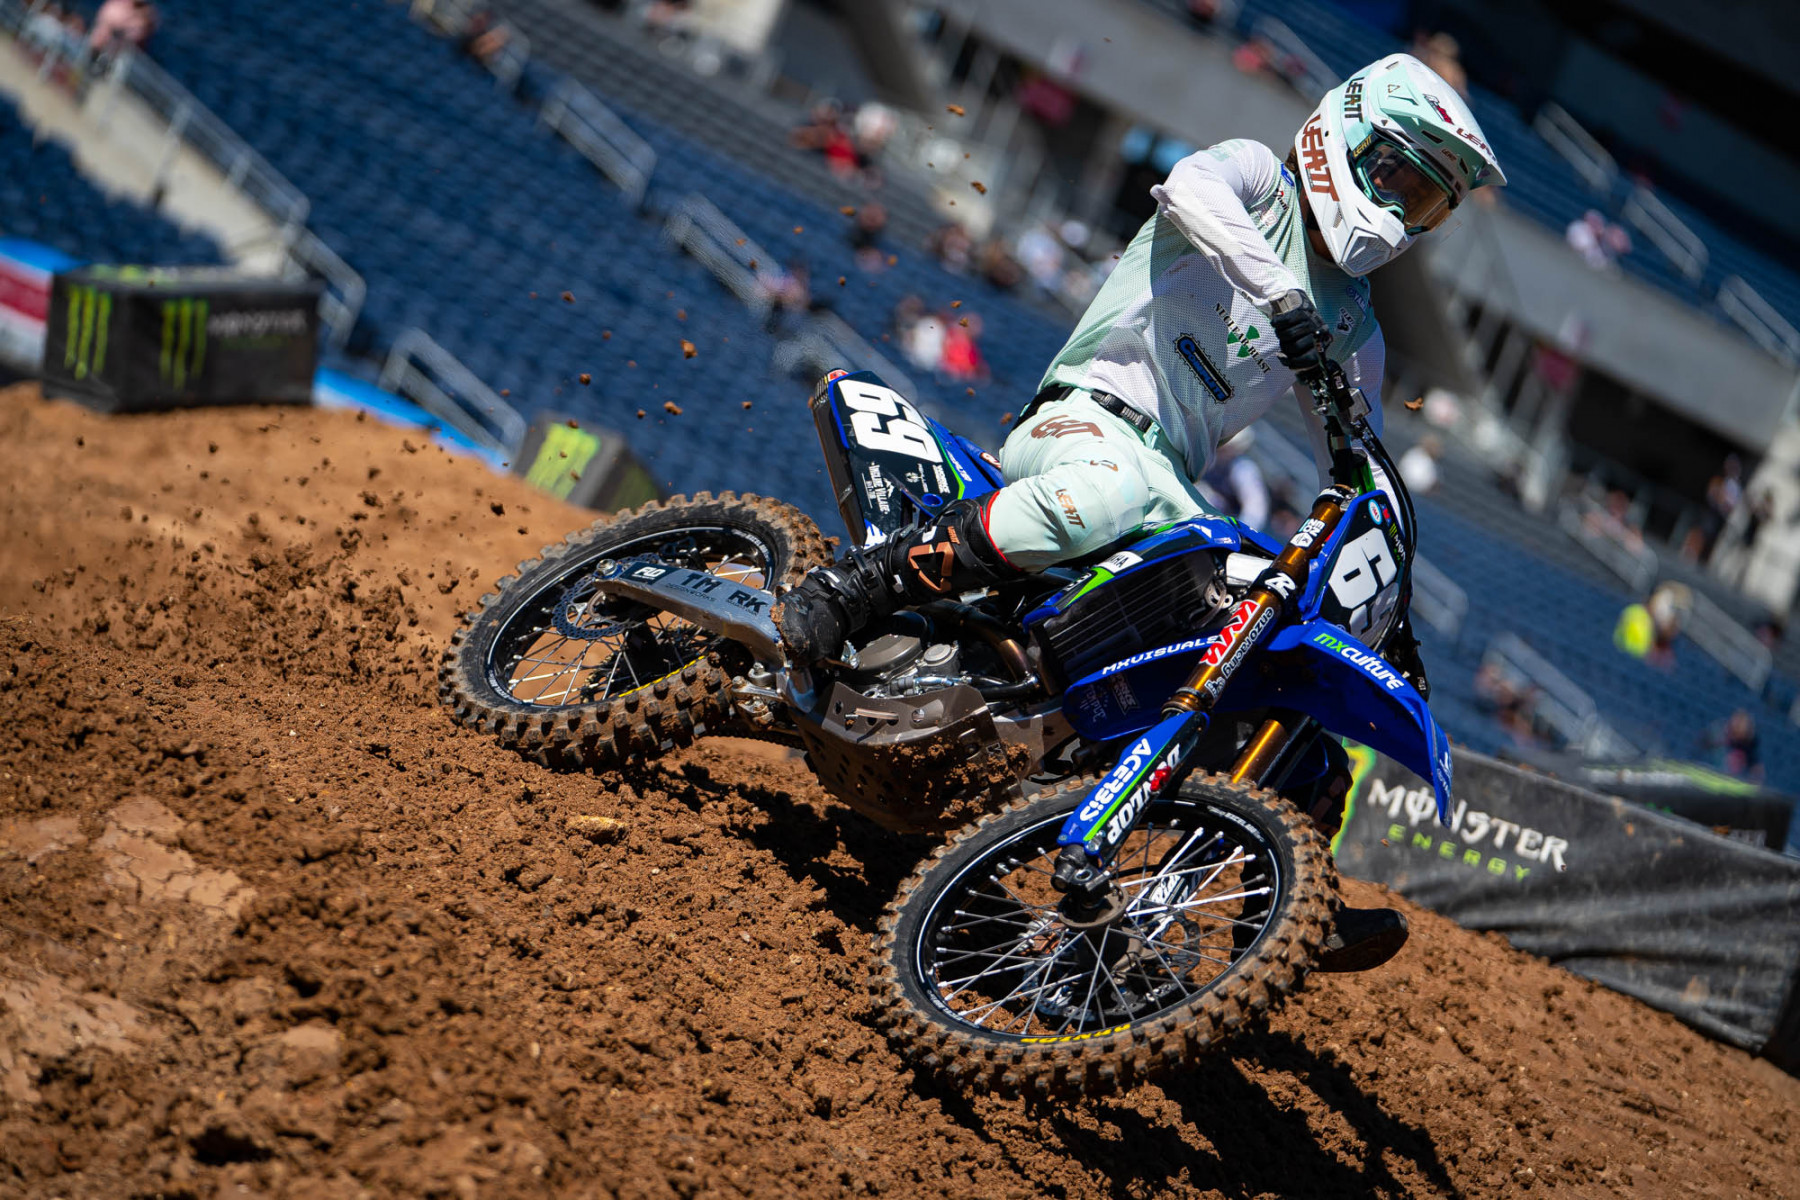 2021-ORLANDO-TWO-SUPERCROSS_KICKSTART_1489